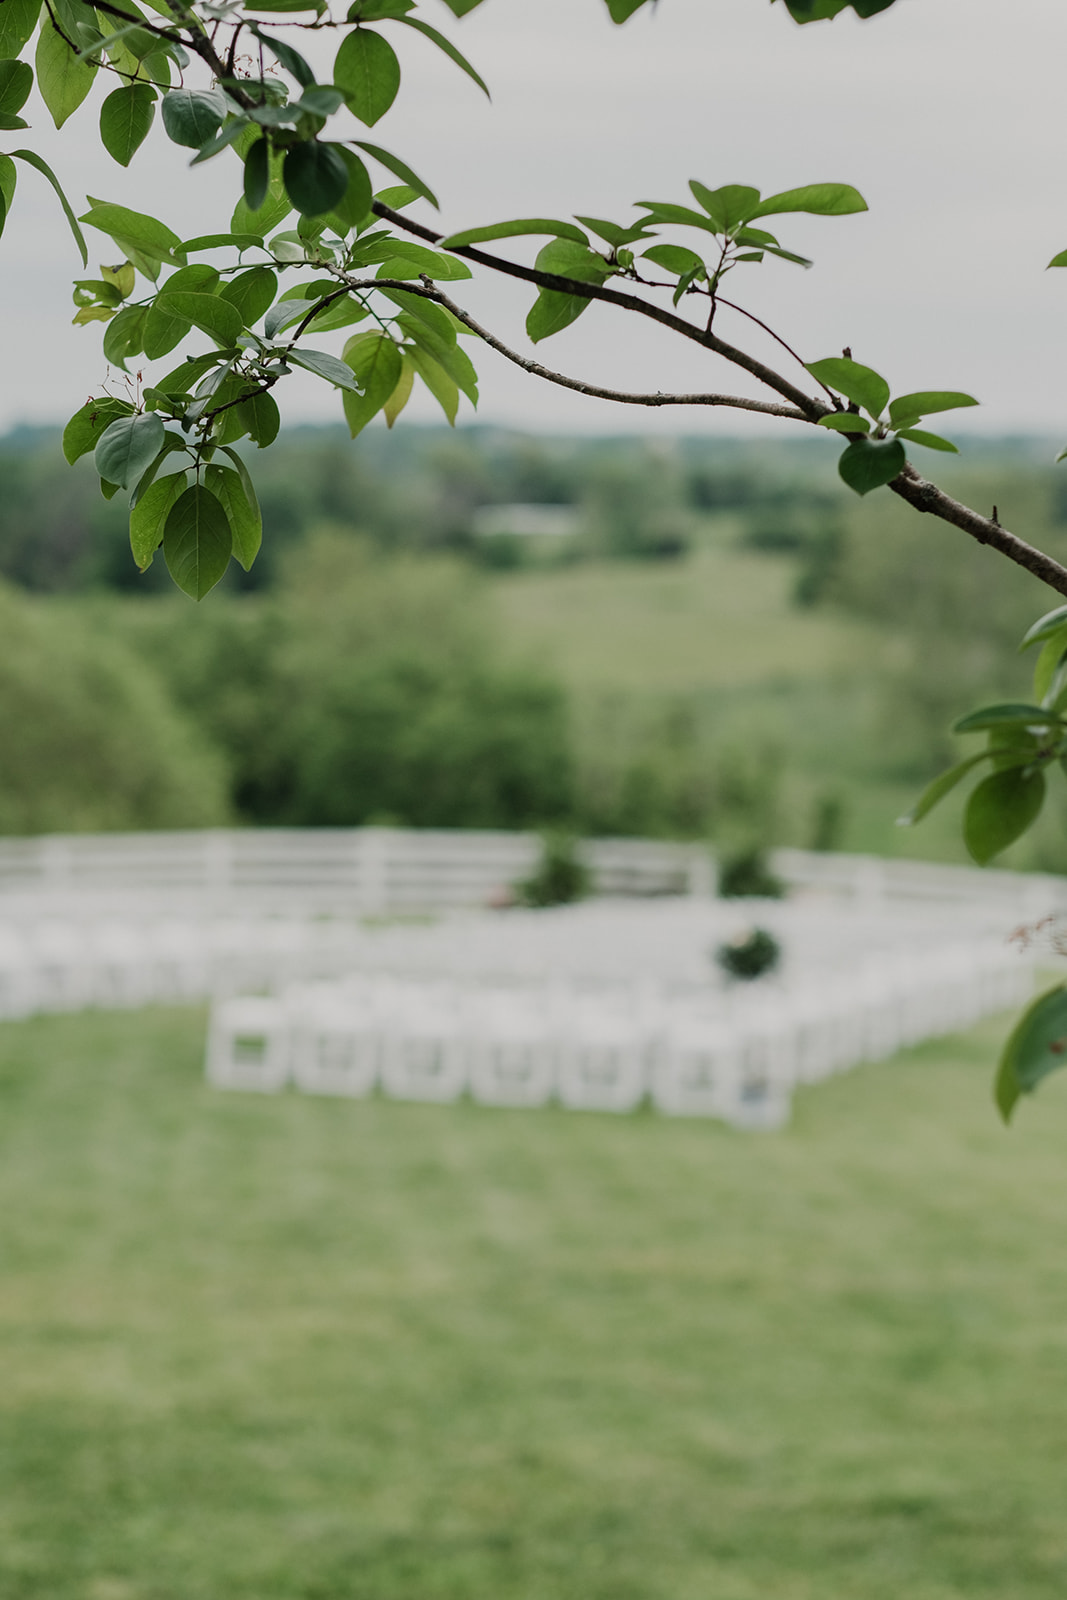 Chairs are set up for an outdoor spring wedding ceremony at Blue Hill Farm in Waterford, VA.